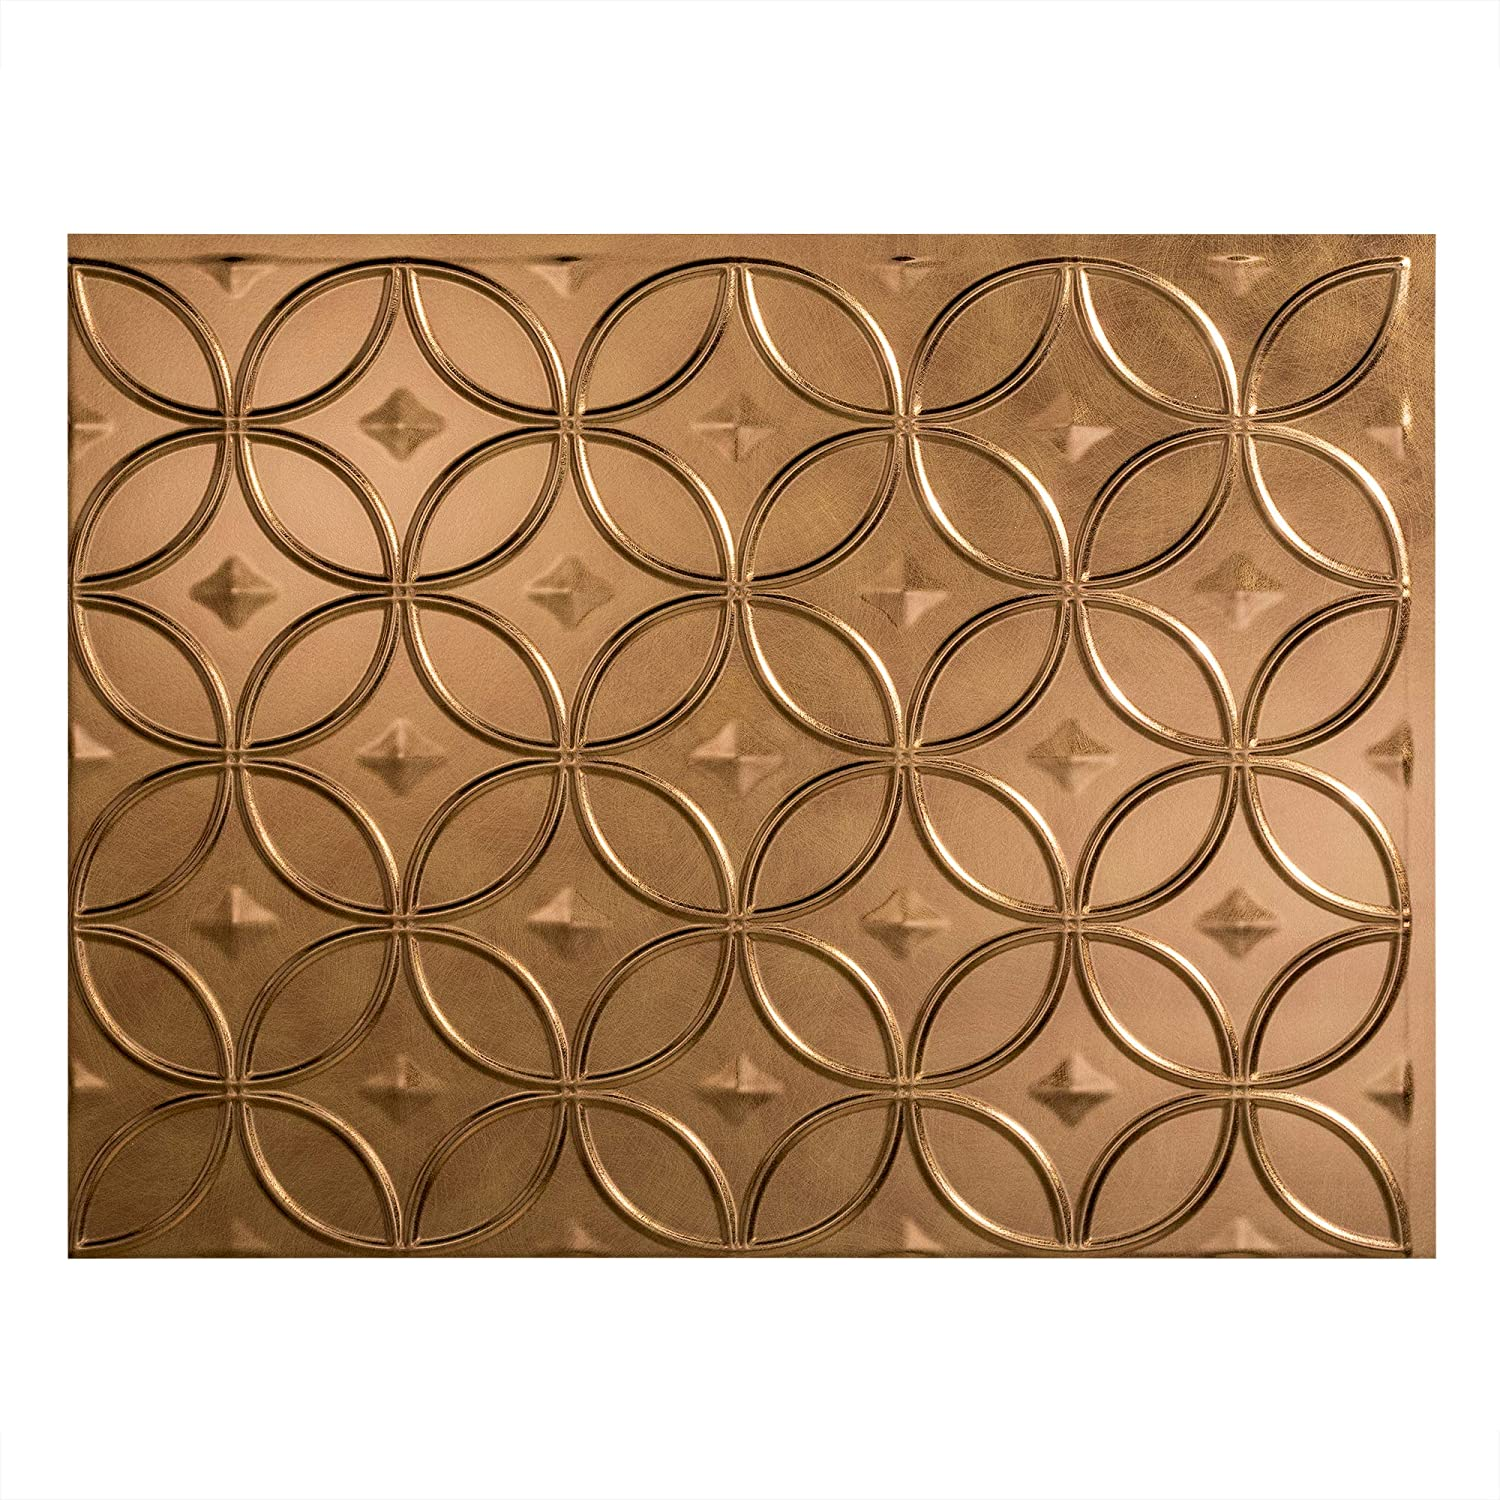 - FASÄDE Rings Decorative Vinyl Backsplash Panel In Antique Bronze